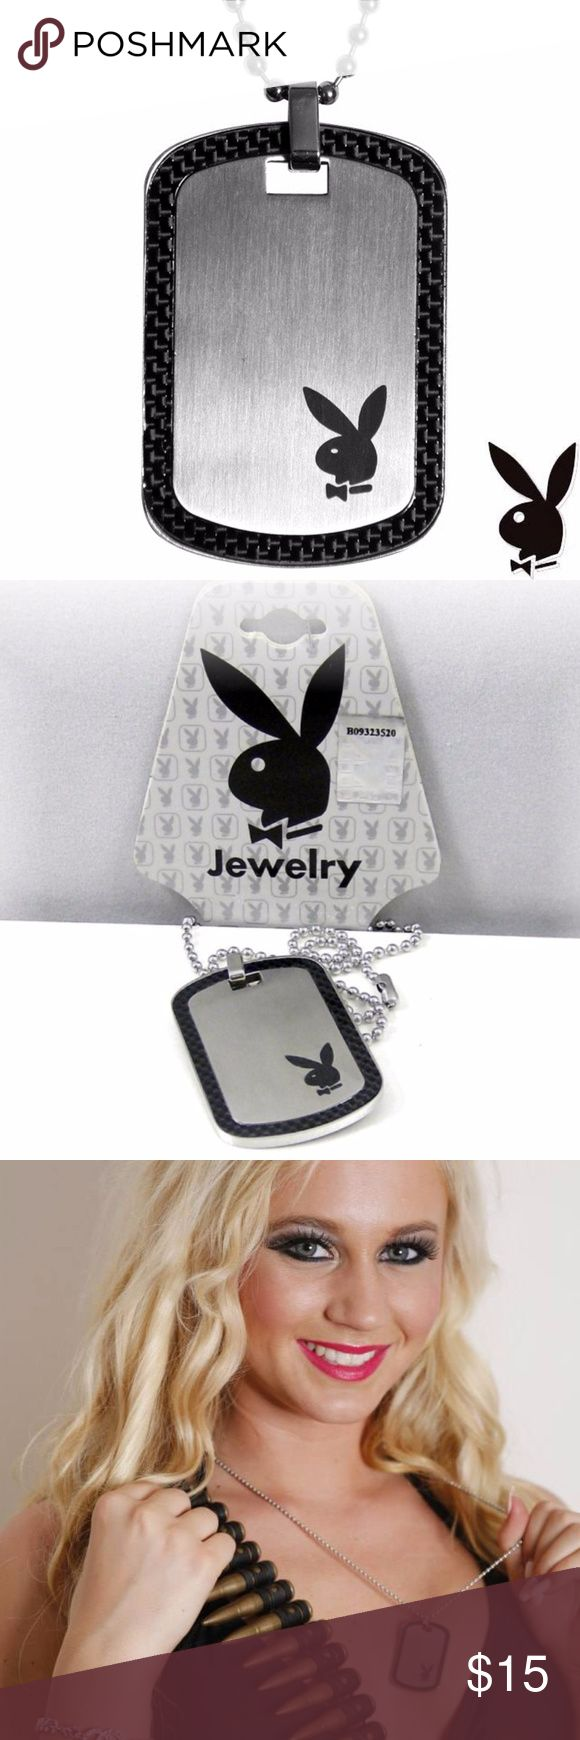 NEW Mens Playboy Necklace Dog Tag Stainless Steel Authentic Playboy Necklace with Dog Tag pendant made of quality Titan Stainless Steel enhanced with Black Carbon Fiber and the Playboy Bunny Logo. Genuine Official Licensed Men's Playboy Dogtag Necklace - Rabbit Head Design. Ball Chain measures 24 inches long. Dog Tag pendant measures 1.75 inches long X 1.25 inches wide. As seen on Daniel Pomerantz, CEO of Playboy Israel & Jessy Erinn, former Playboy bunny & model. Includes Playboy hanging…